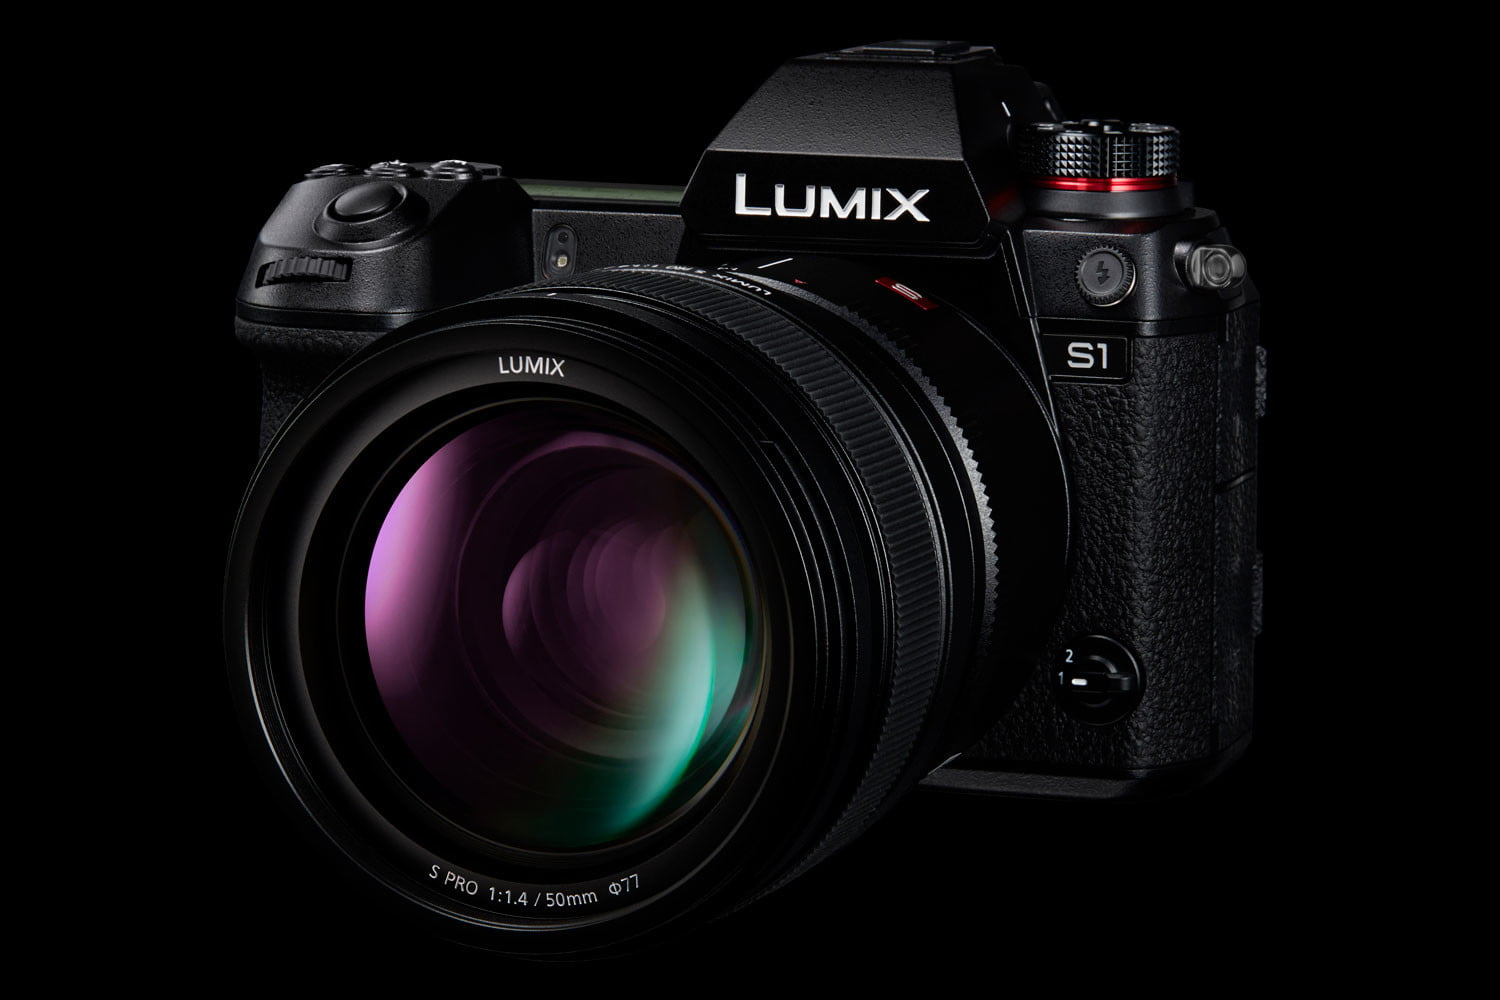 Lumix S1 is a hybrid powerhouse camera, and Panasonic's answer to the Sony A7 III